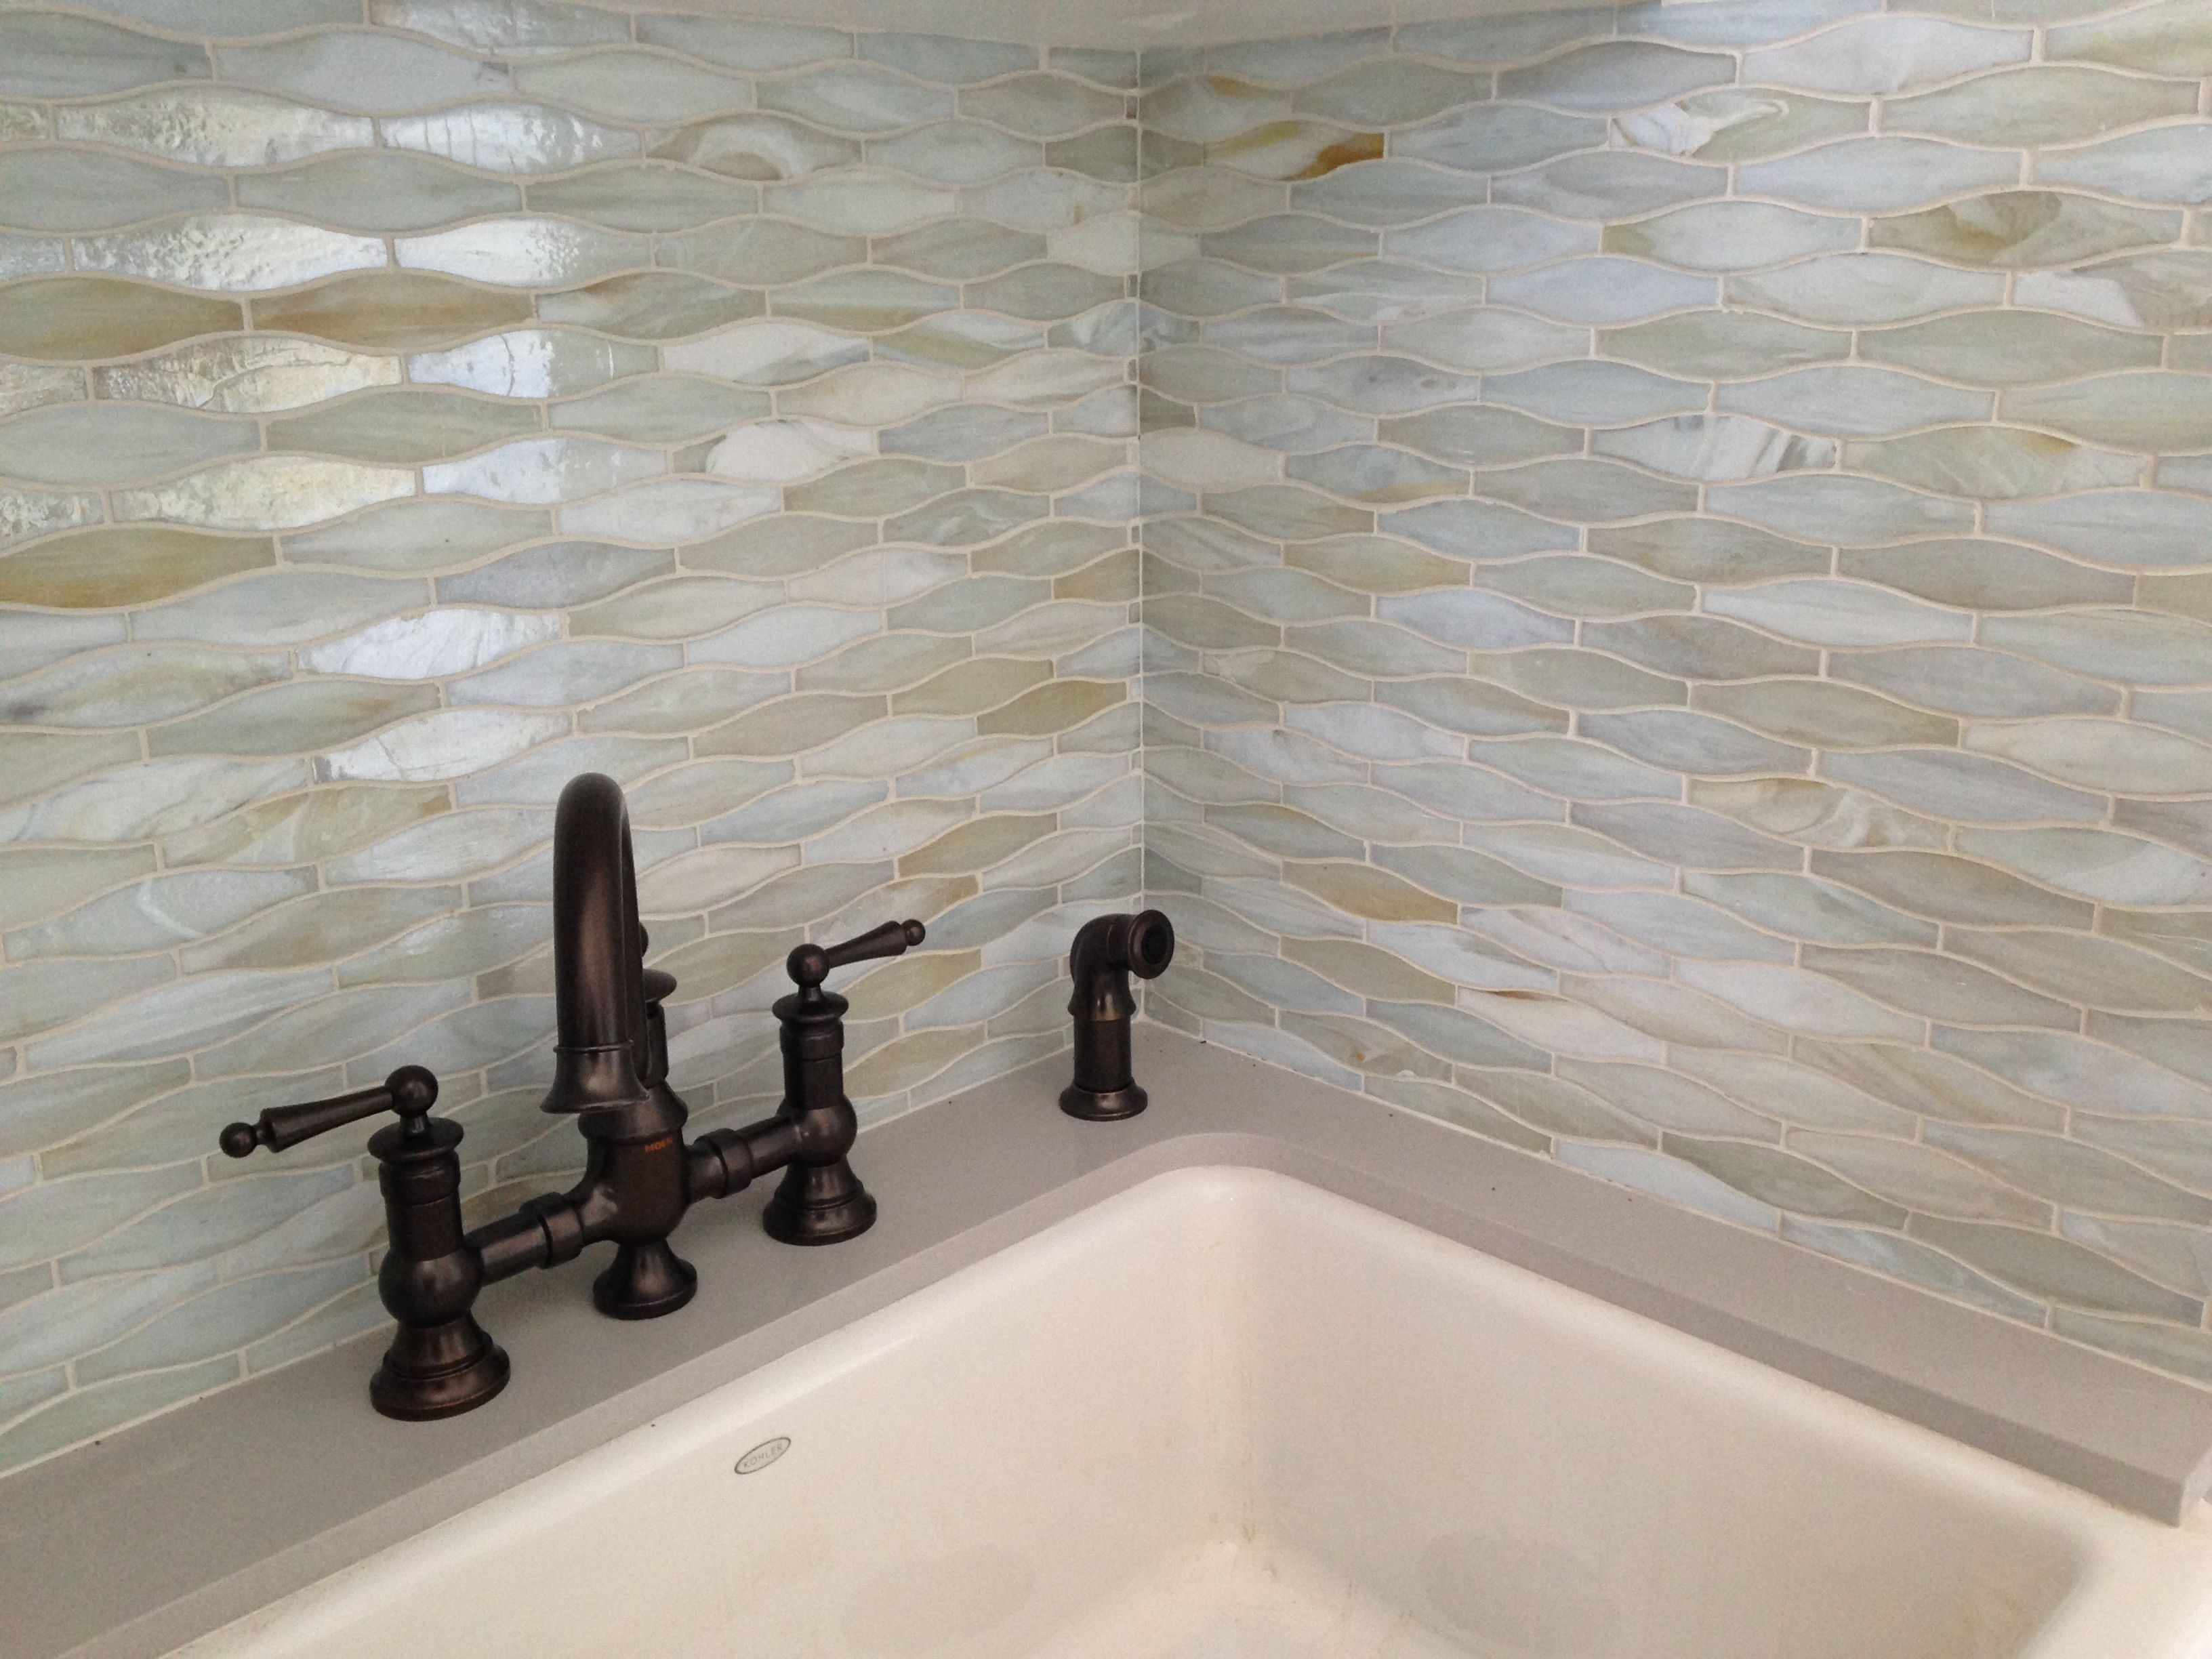 Bathroom Floor Tiles At Ctm Ctm Johannesburg Projects Photos Reviews